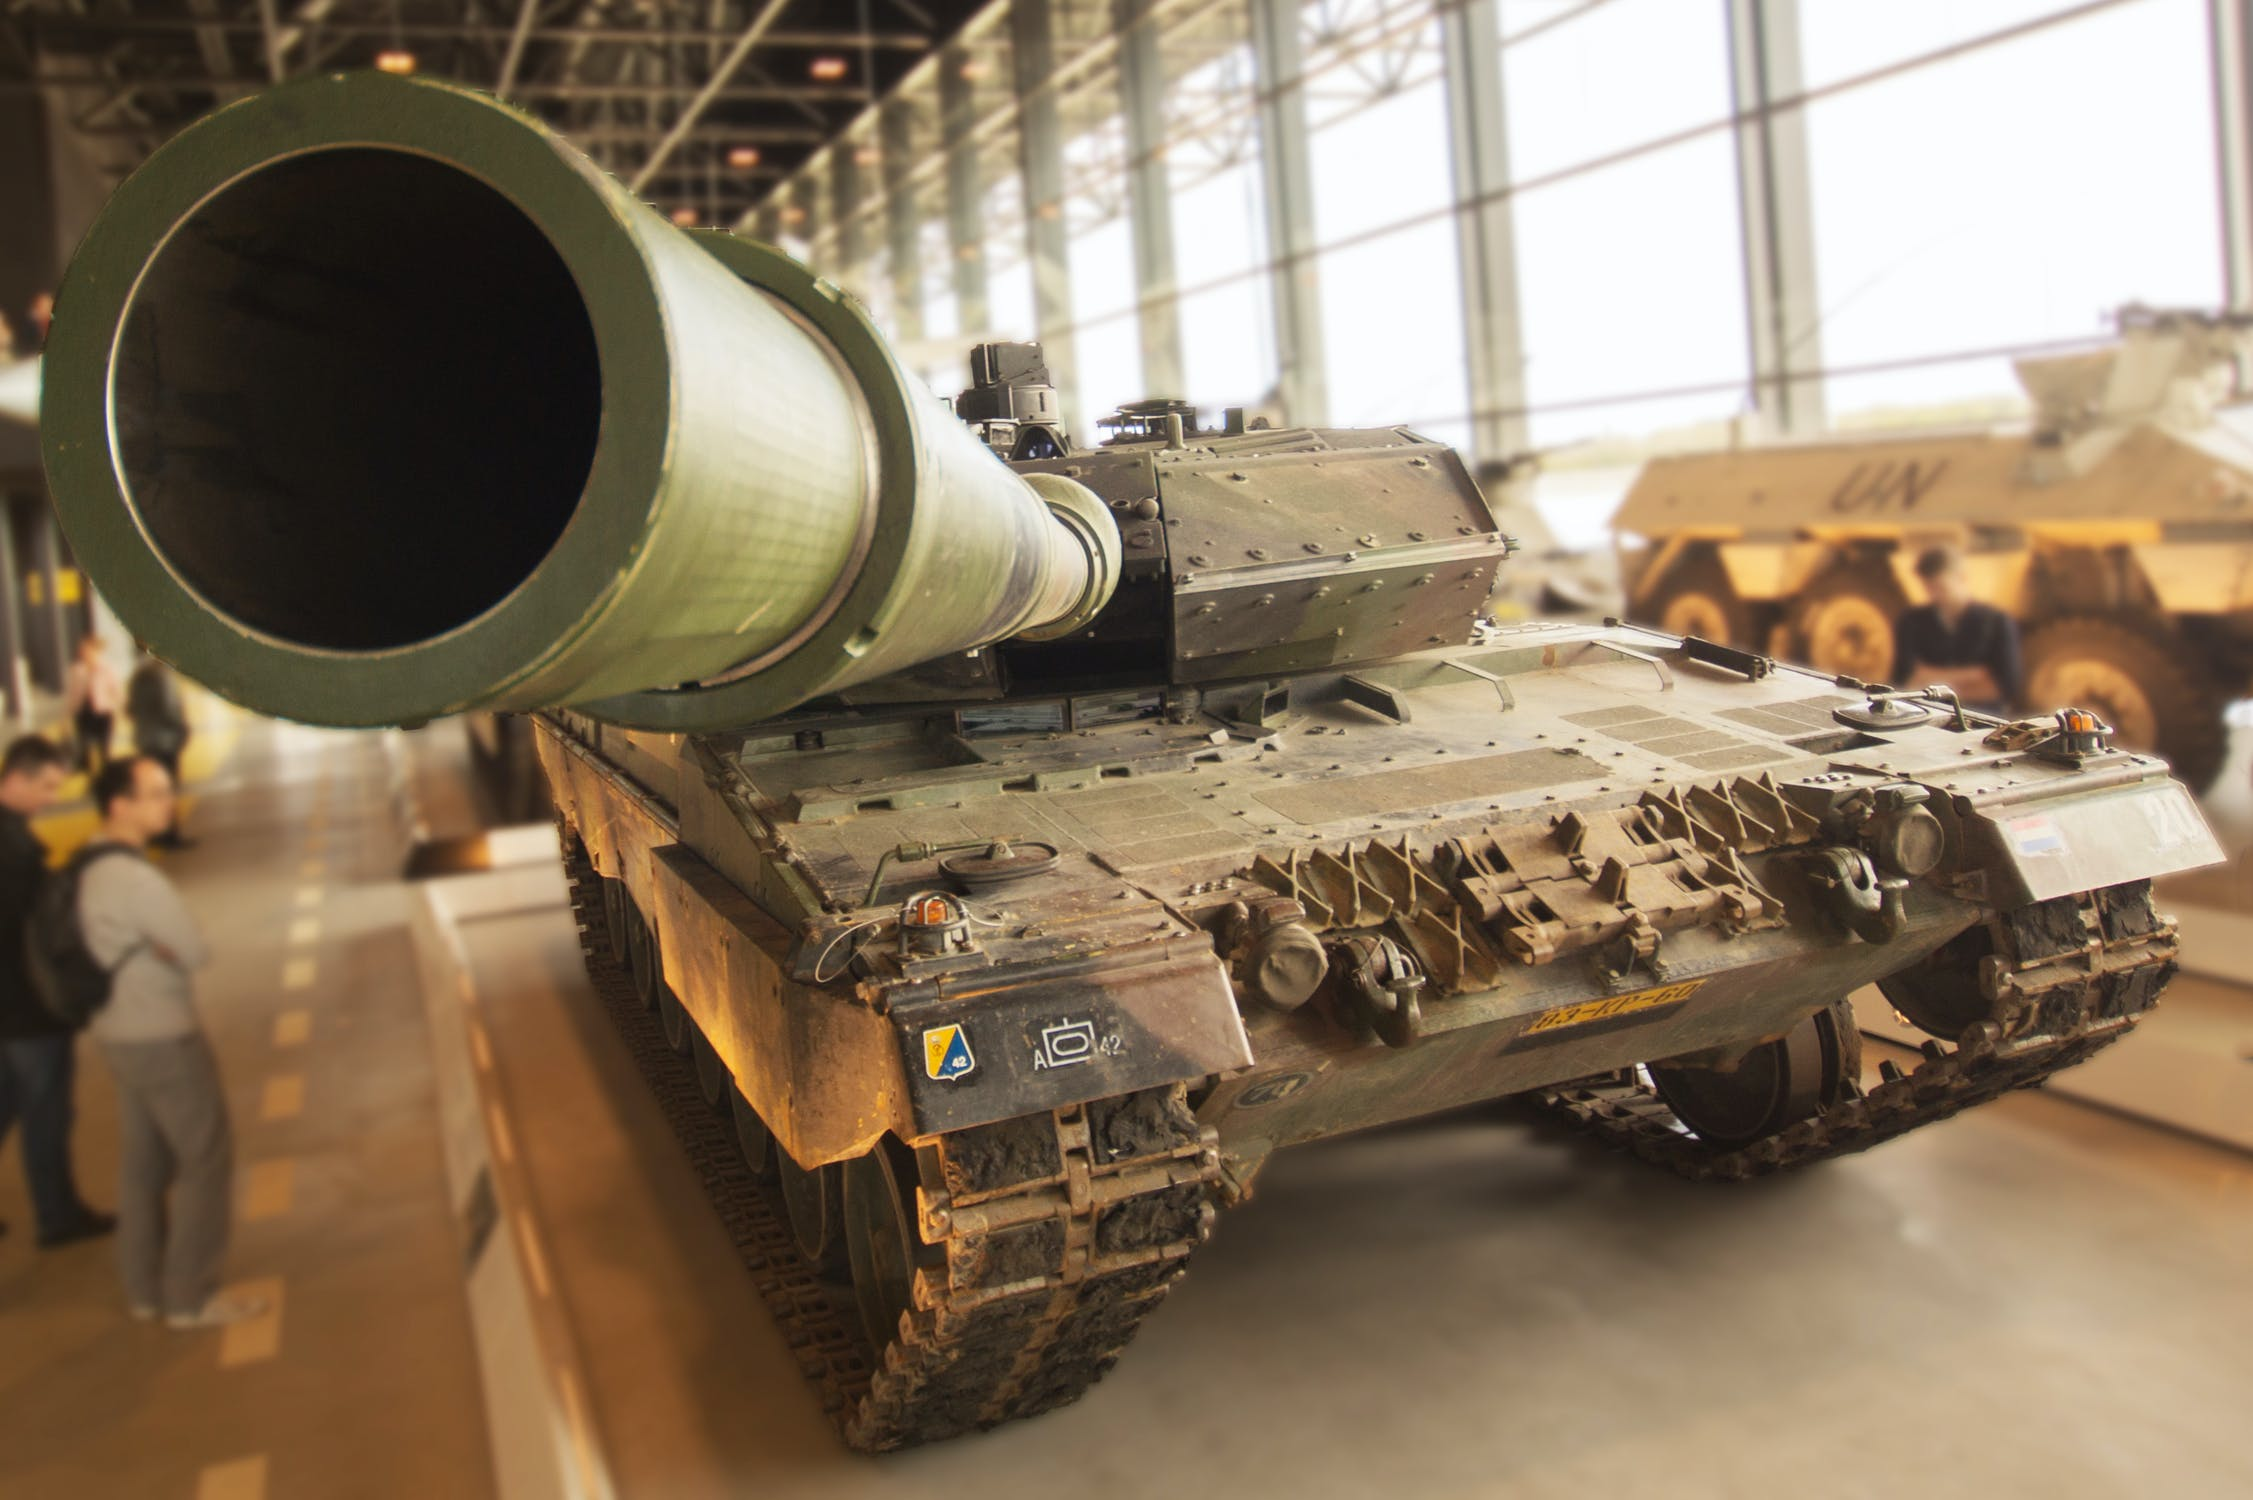 Recovery plan: what if the European Union itself bought military equipment?